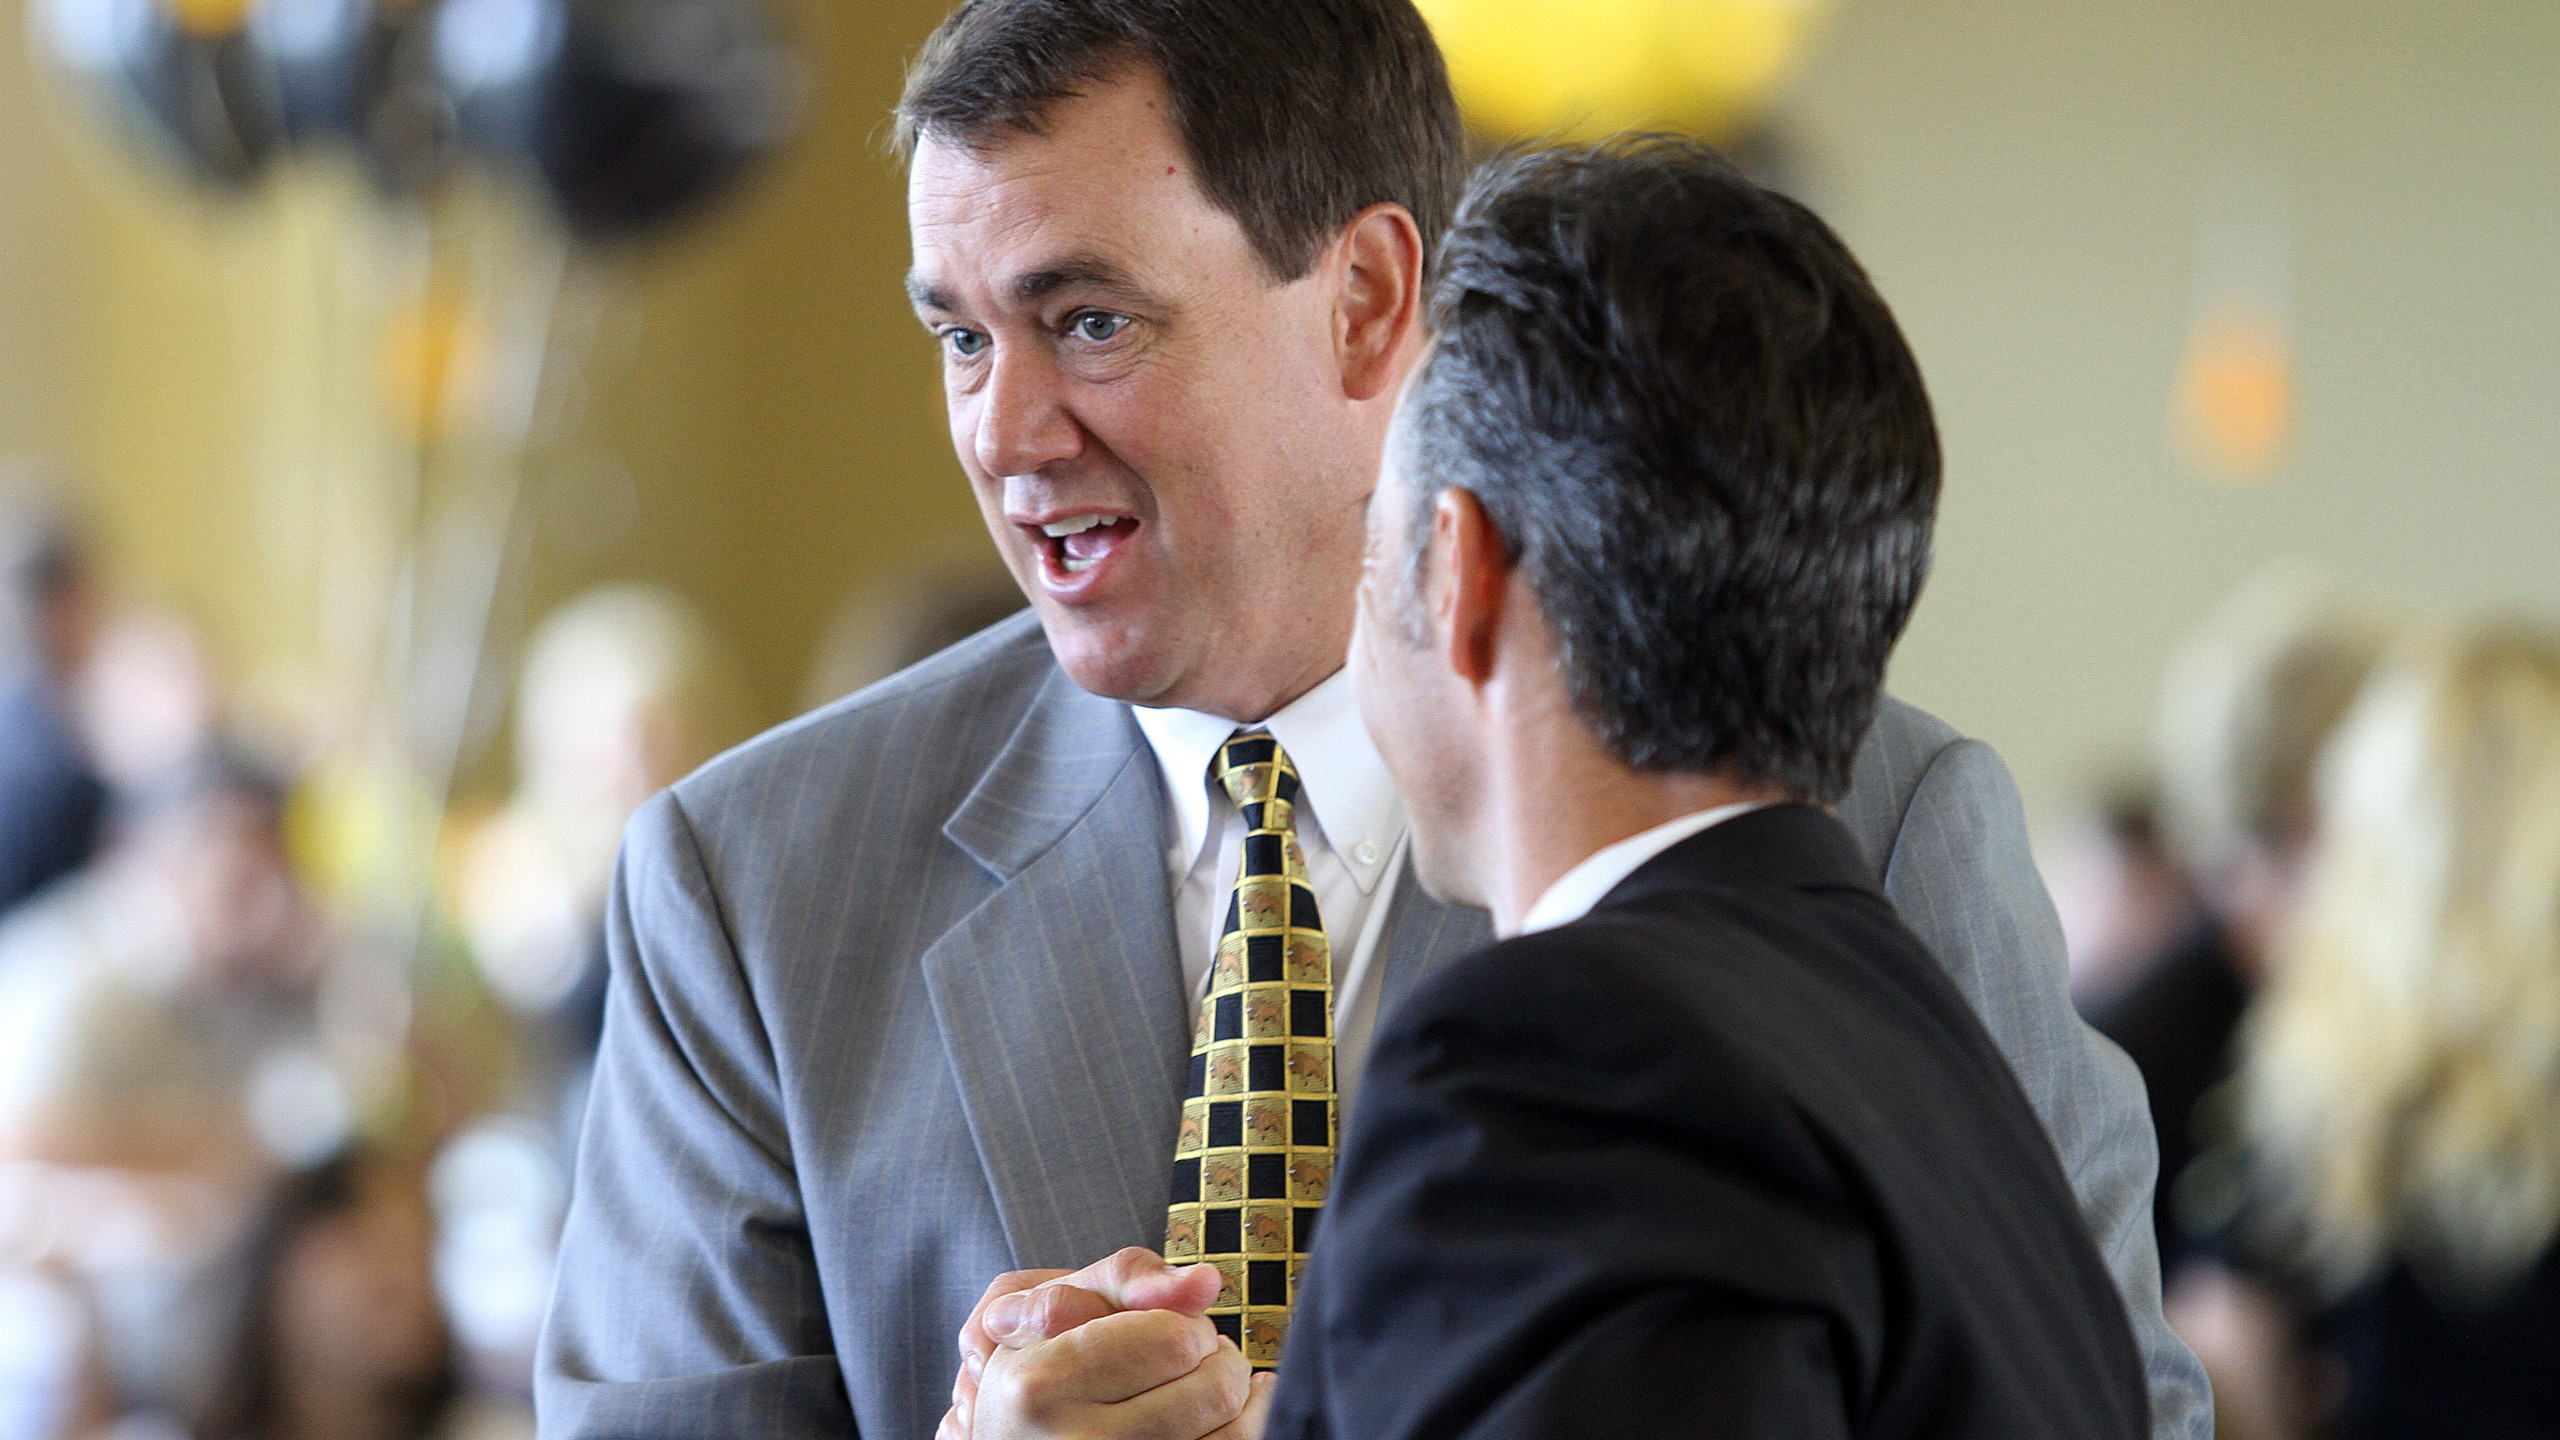 Mike Bohn, left, is seen at Folsom Stadium in Boulder while serving as the University of Colorado's athletic director on June 11, 2010. (Credit: Marc Piscotty/Getty Images)